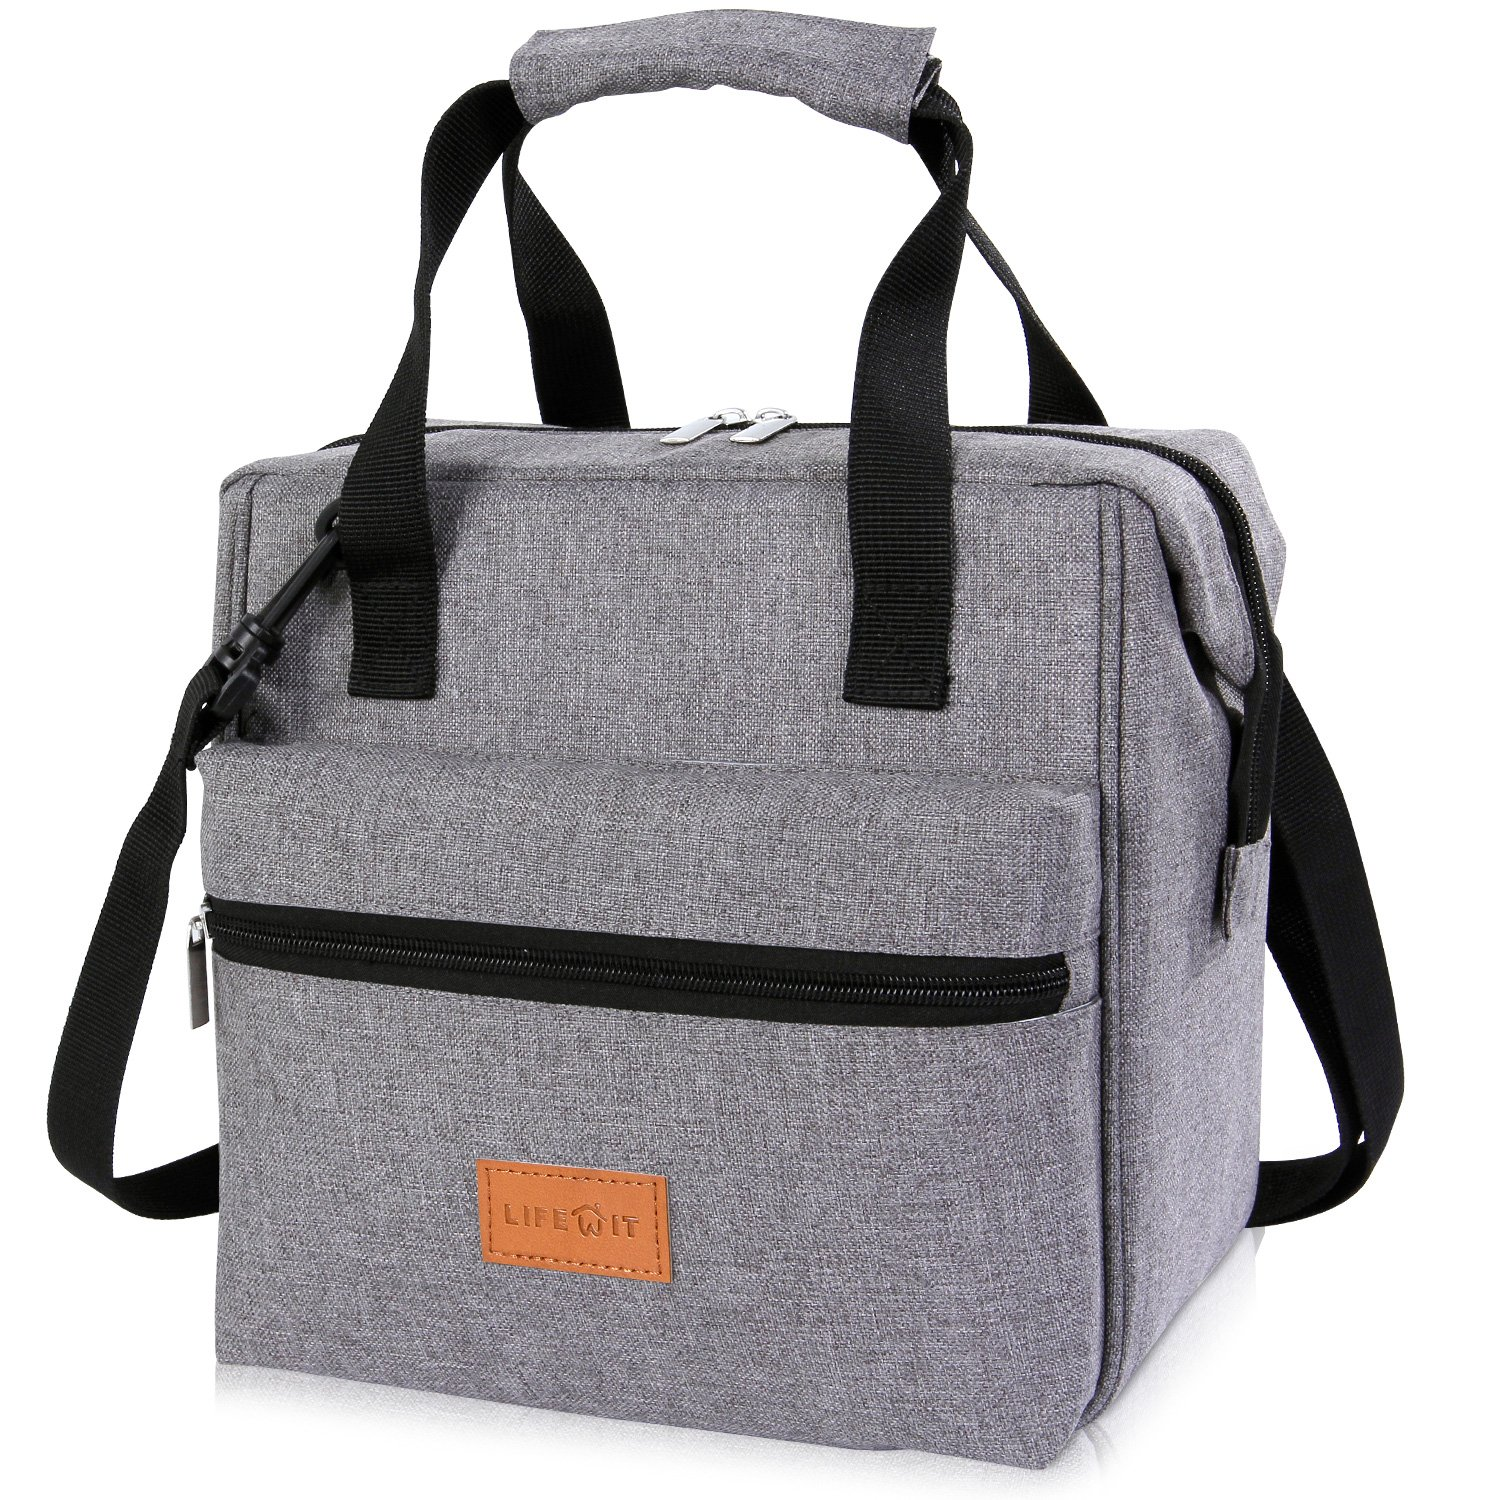 Lifewit 10L Insulated Lunch Box Bag for Adults Kids Men Women, 3-Way Carrying Thermal Bento Bag Cooler Bag for Work/School / Picnic, Grey